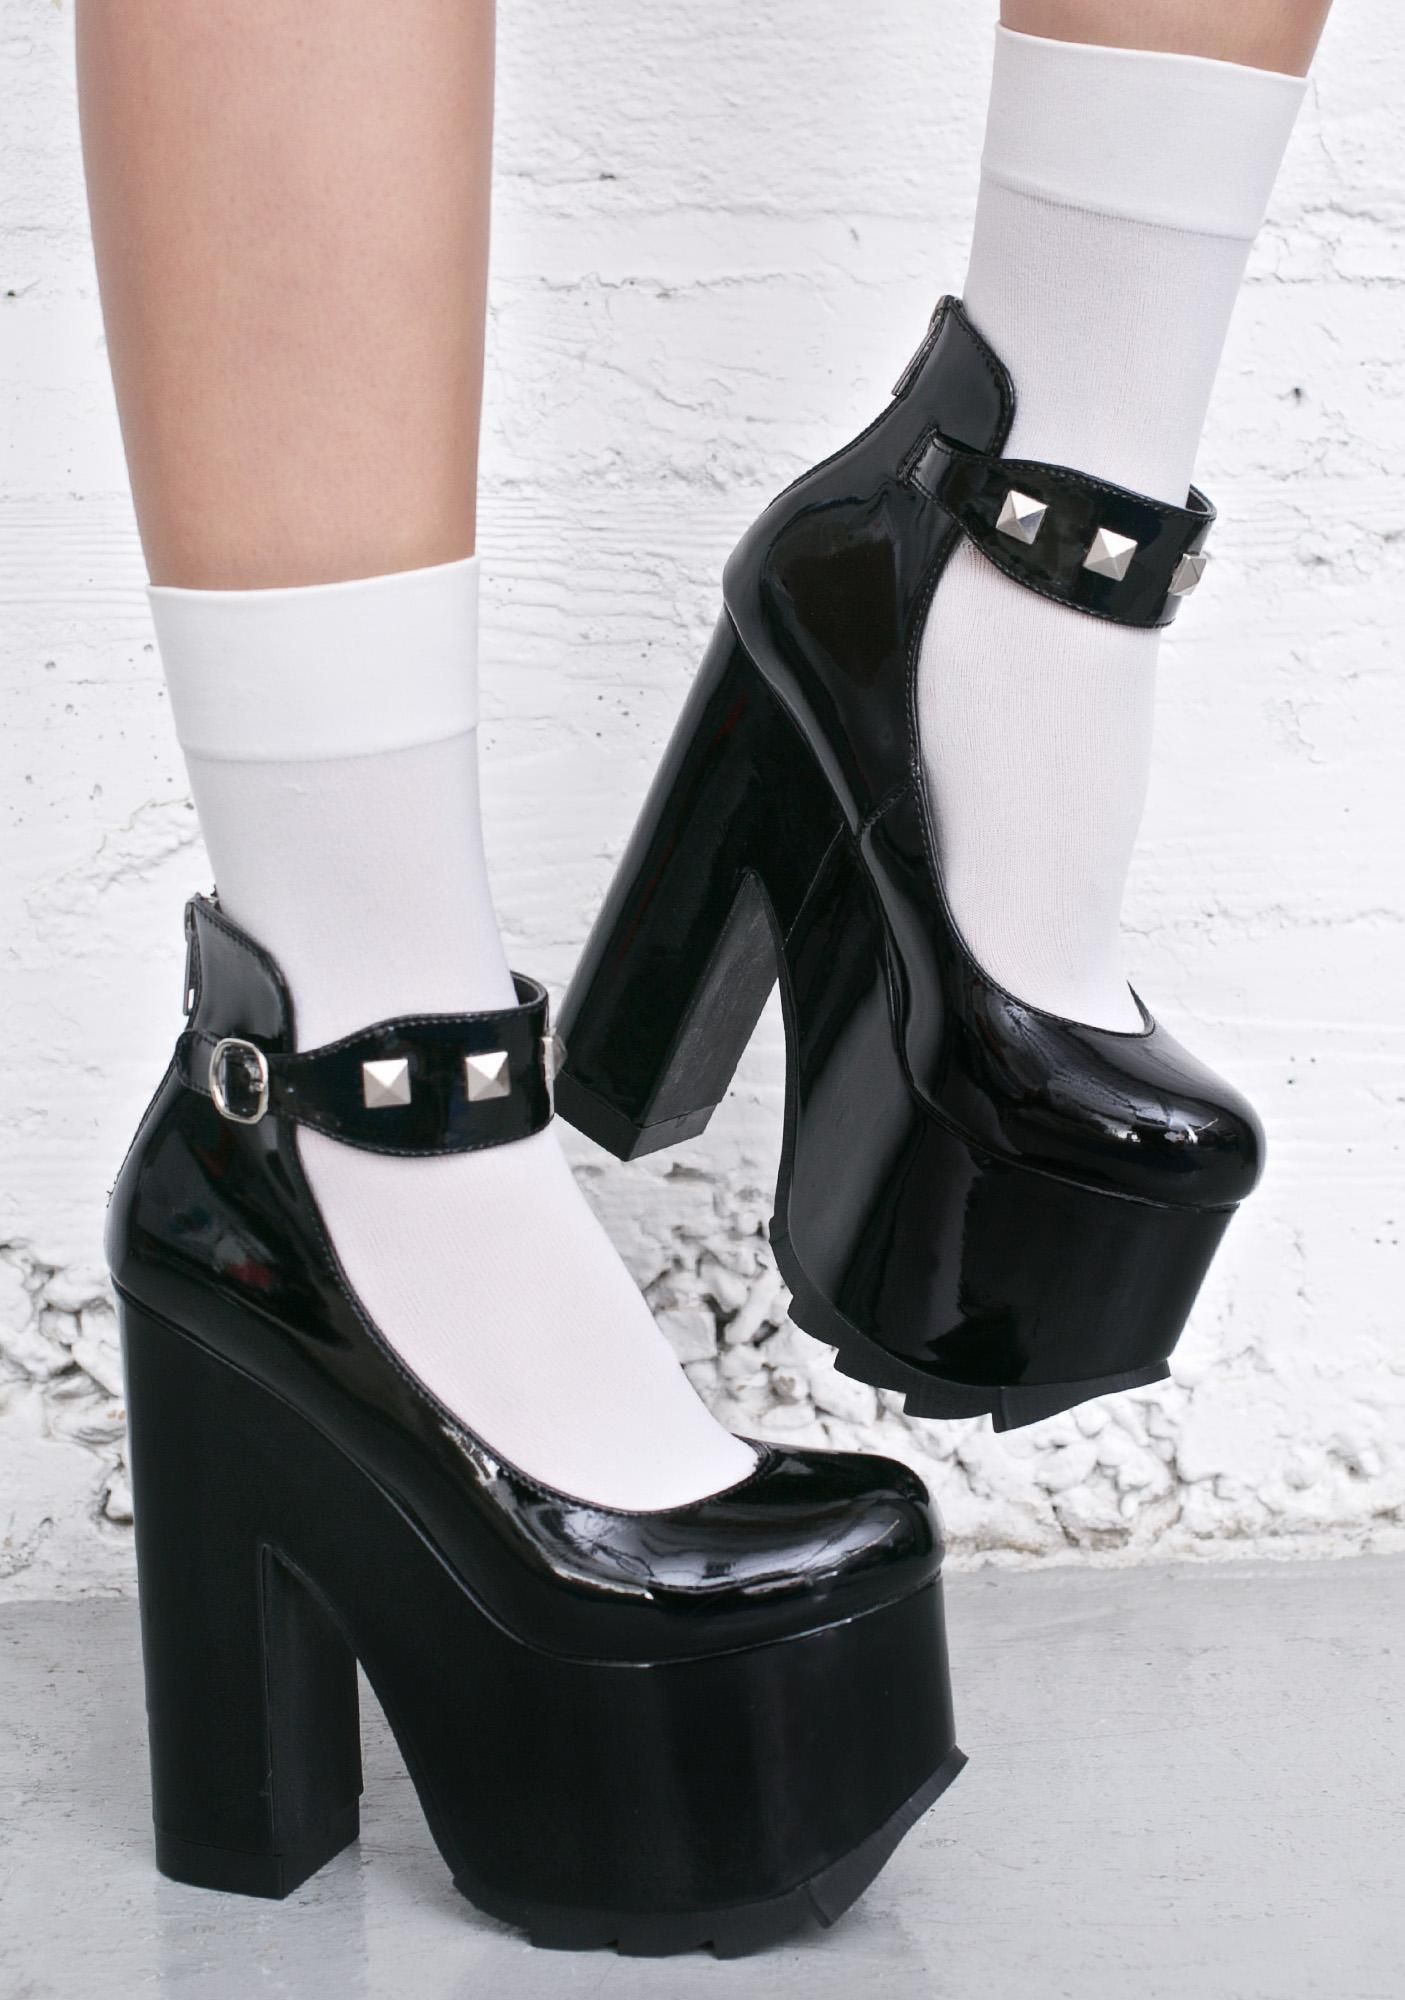 The platform fetish girls high heels